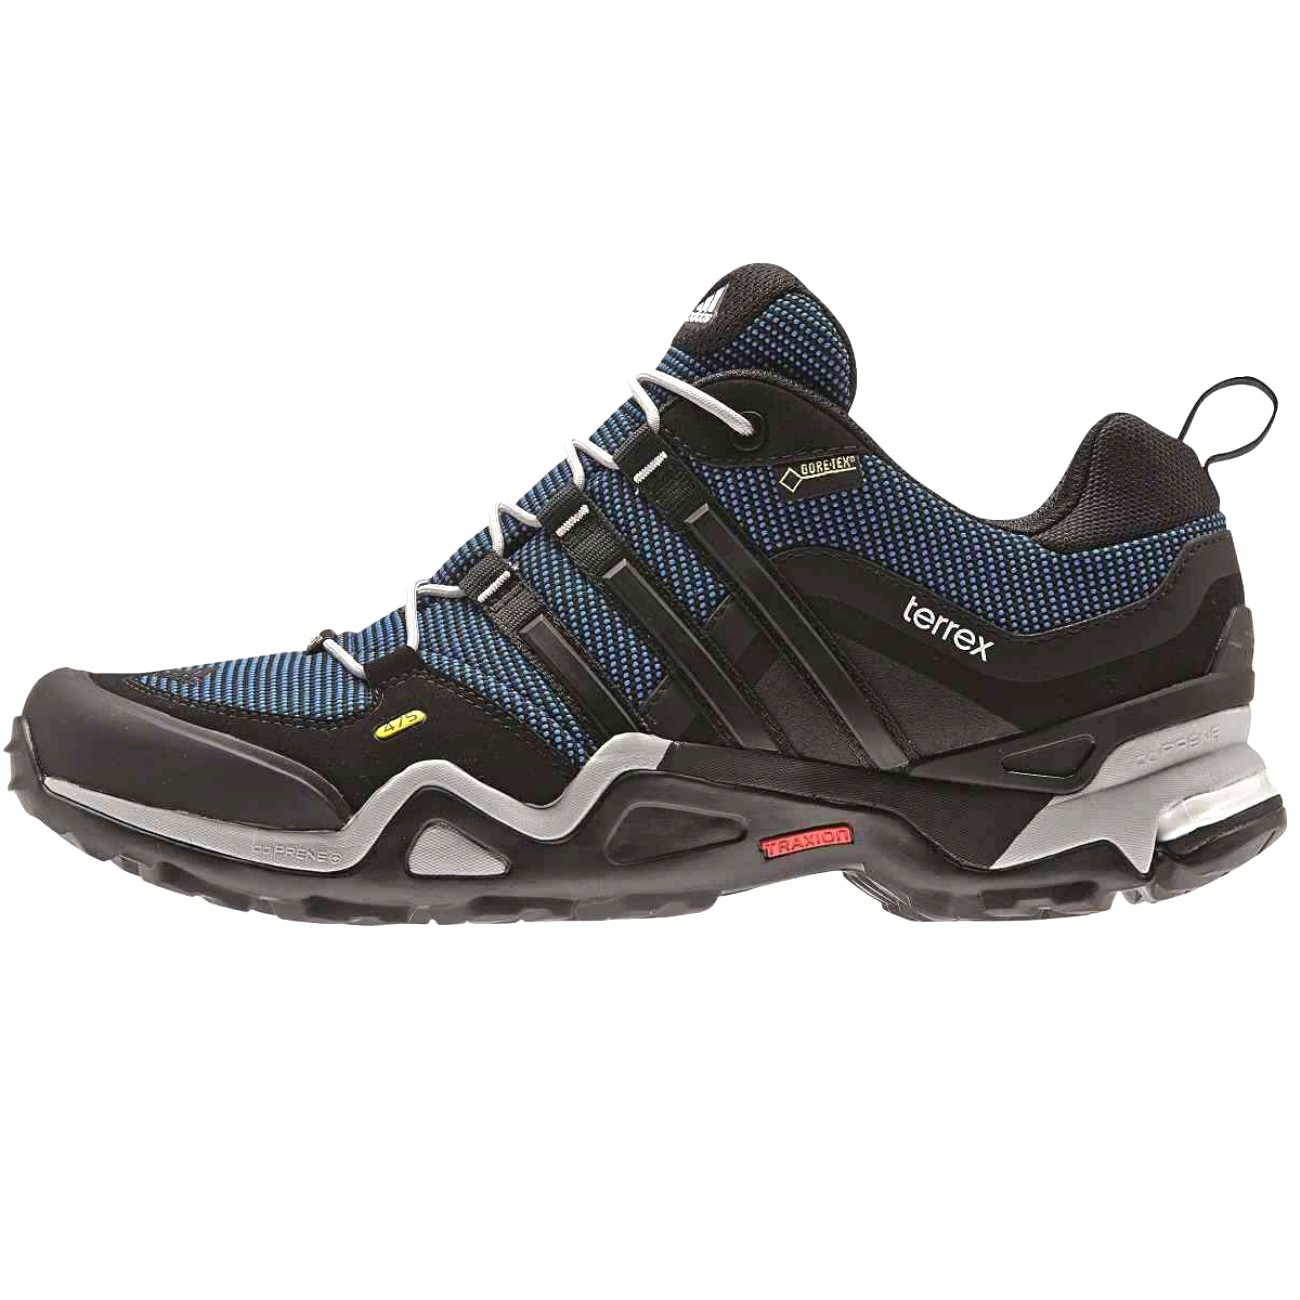 adidas terrex fast x gtx gore tex shoes hiking shoes men 39 s. Black Bedroom Furniture Sets. Home Design Ideas